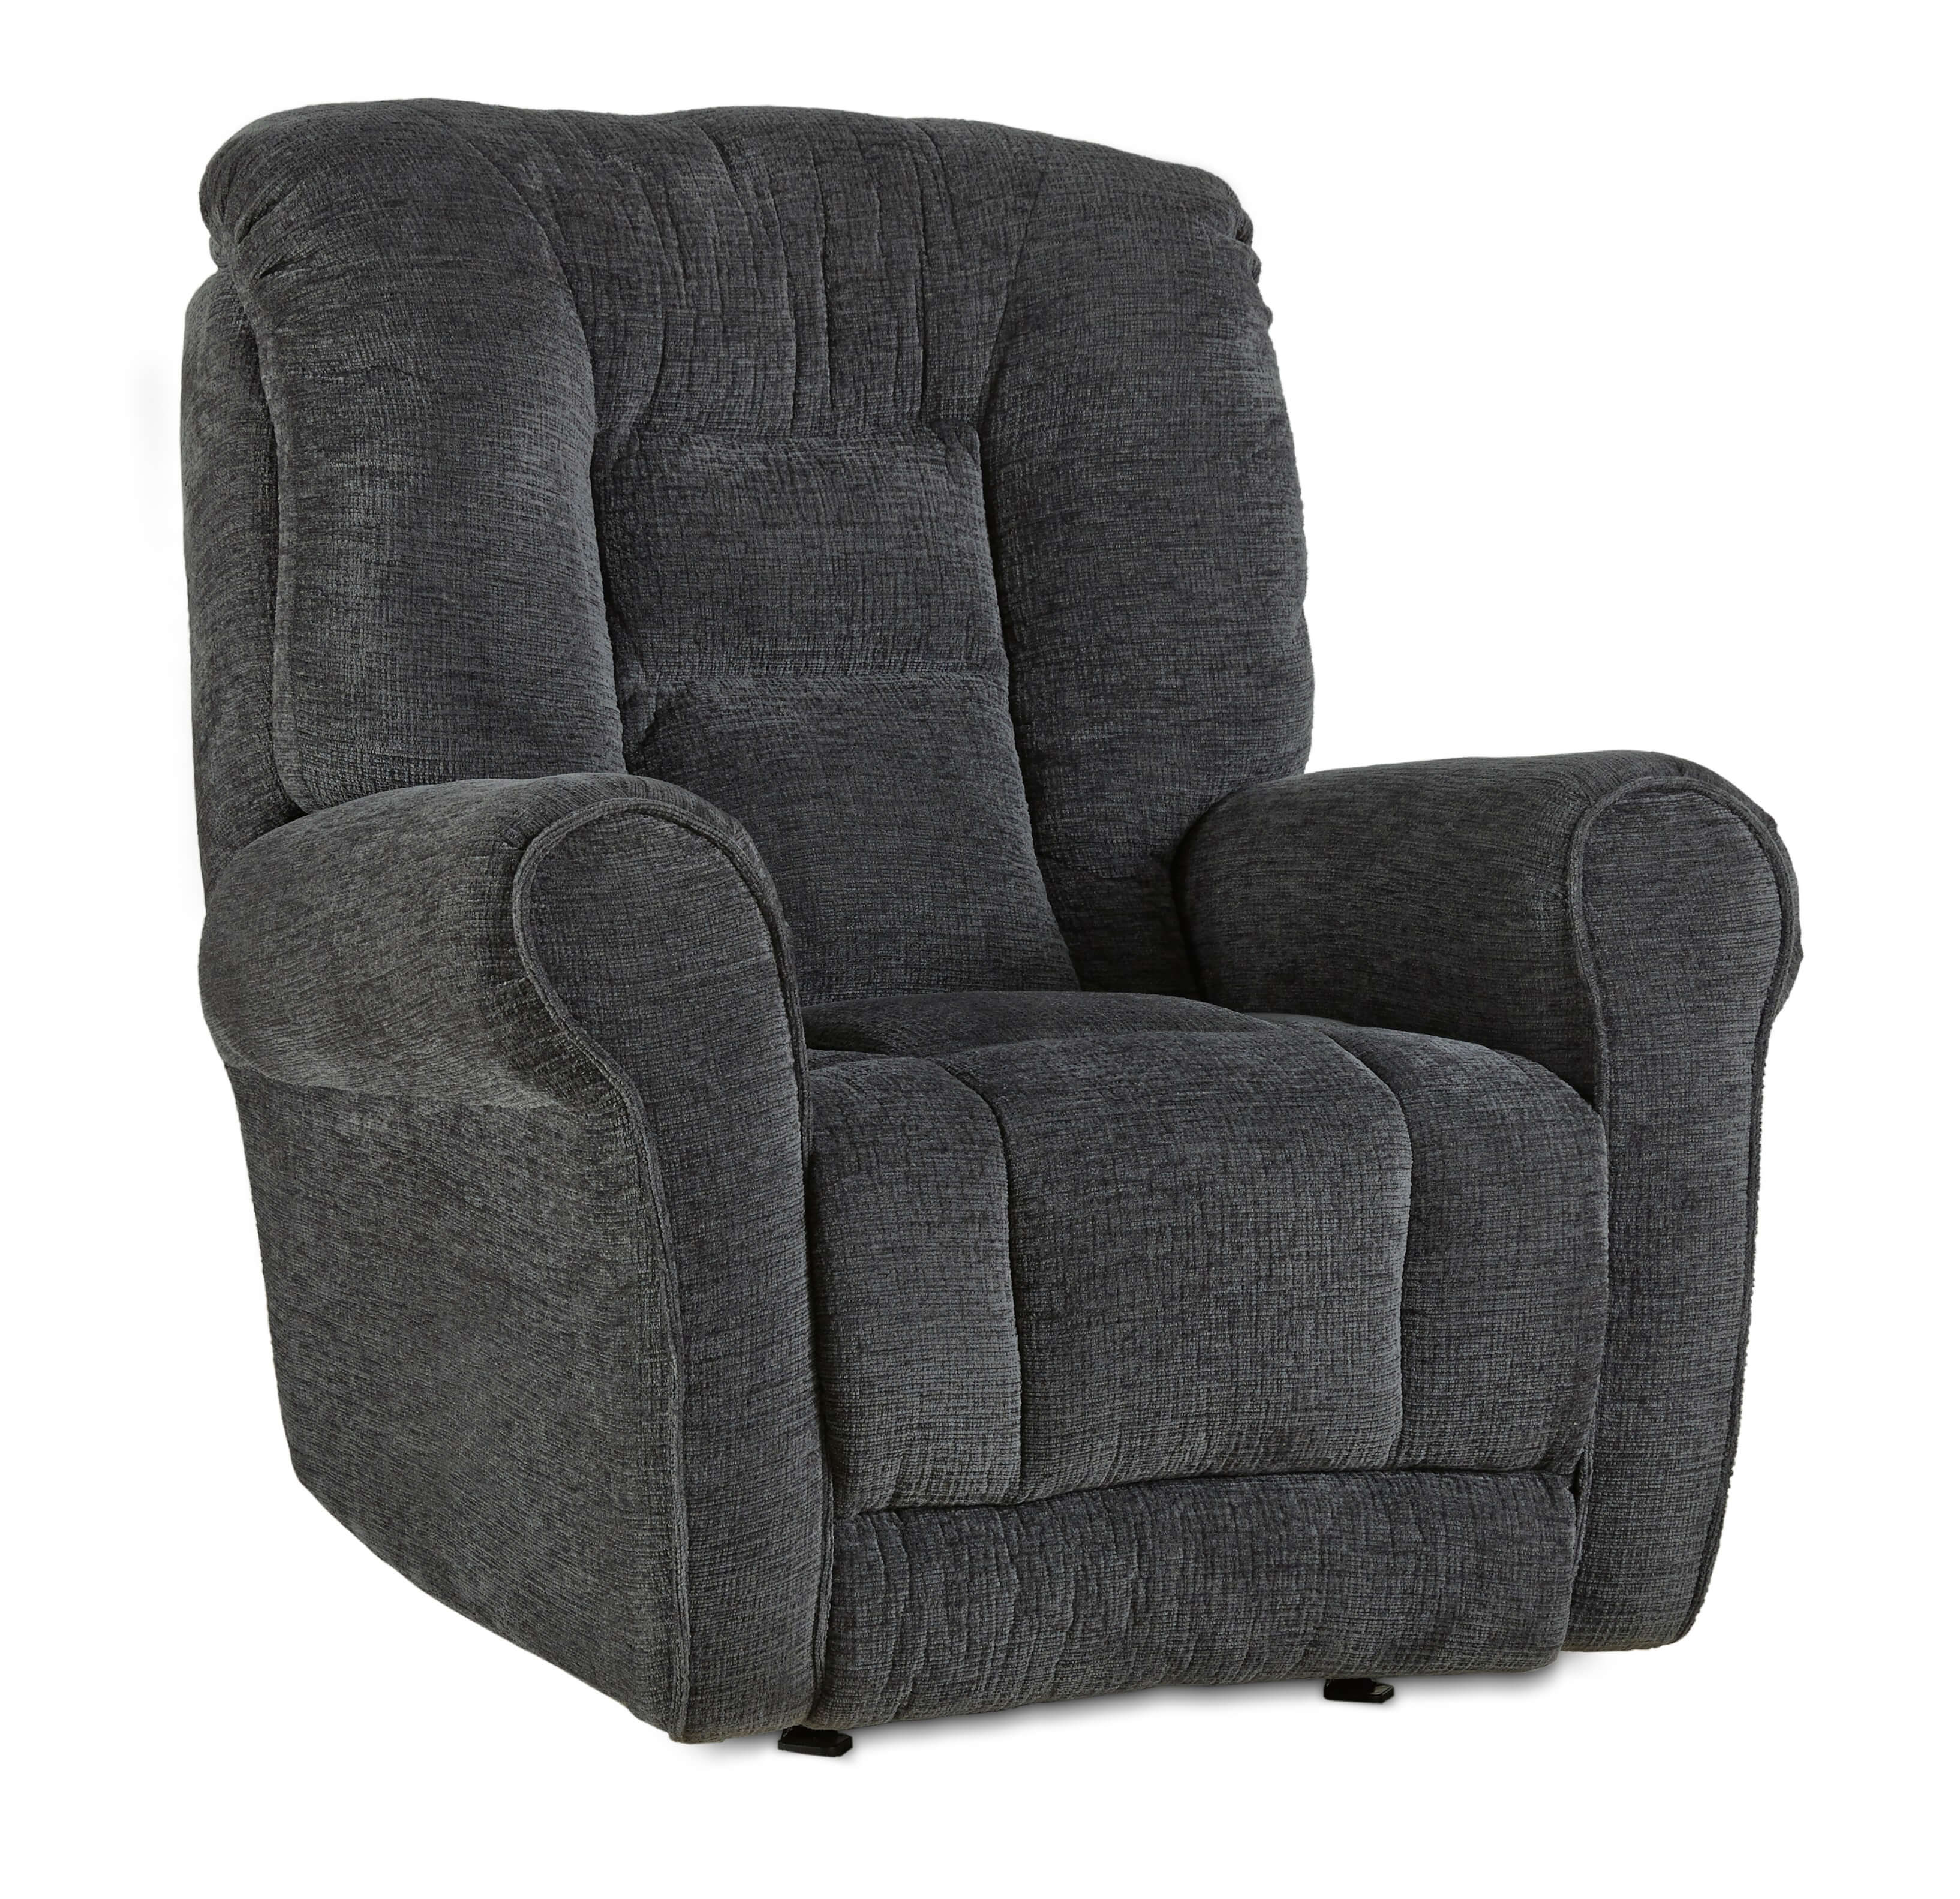 1420 Grand Recliner Image